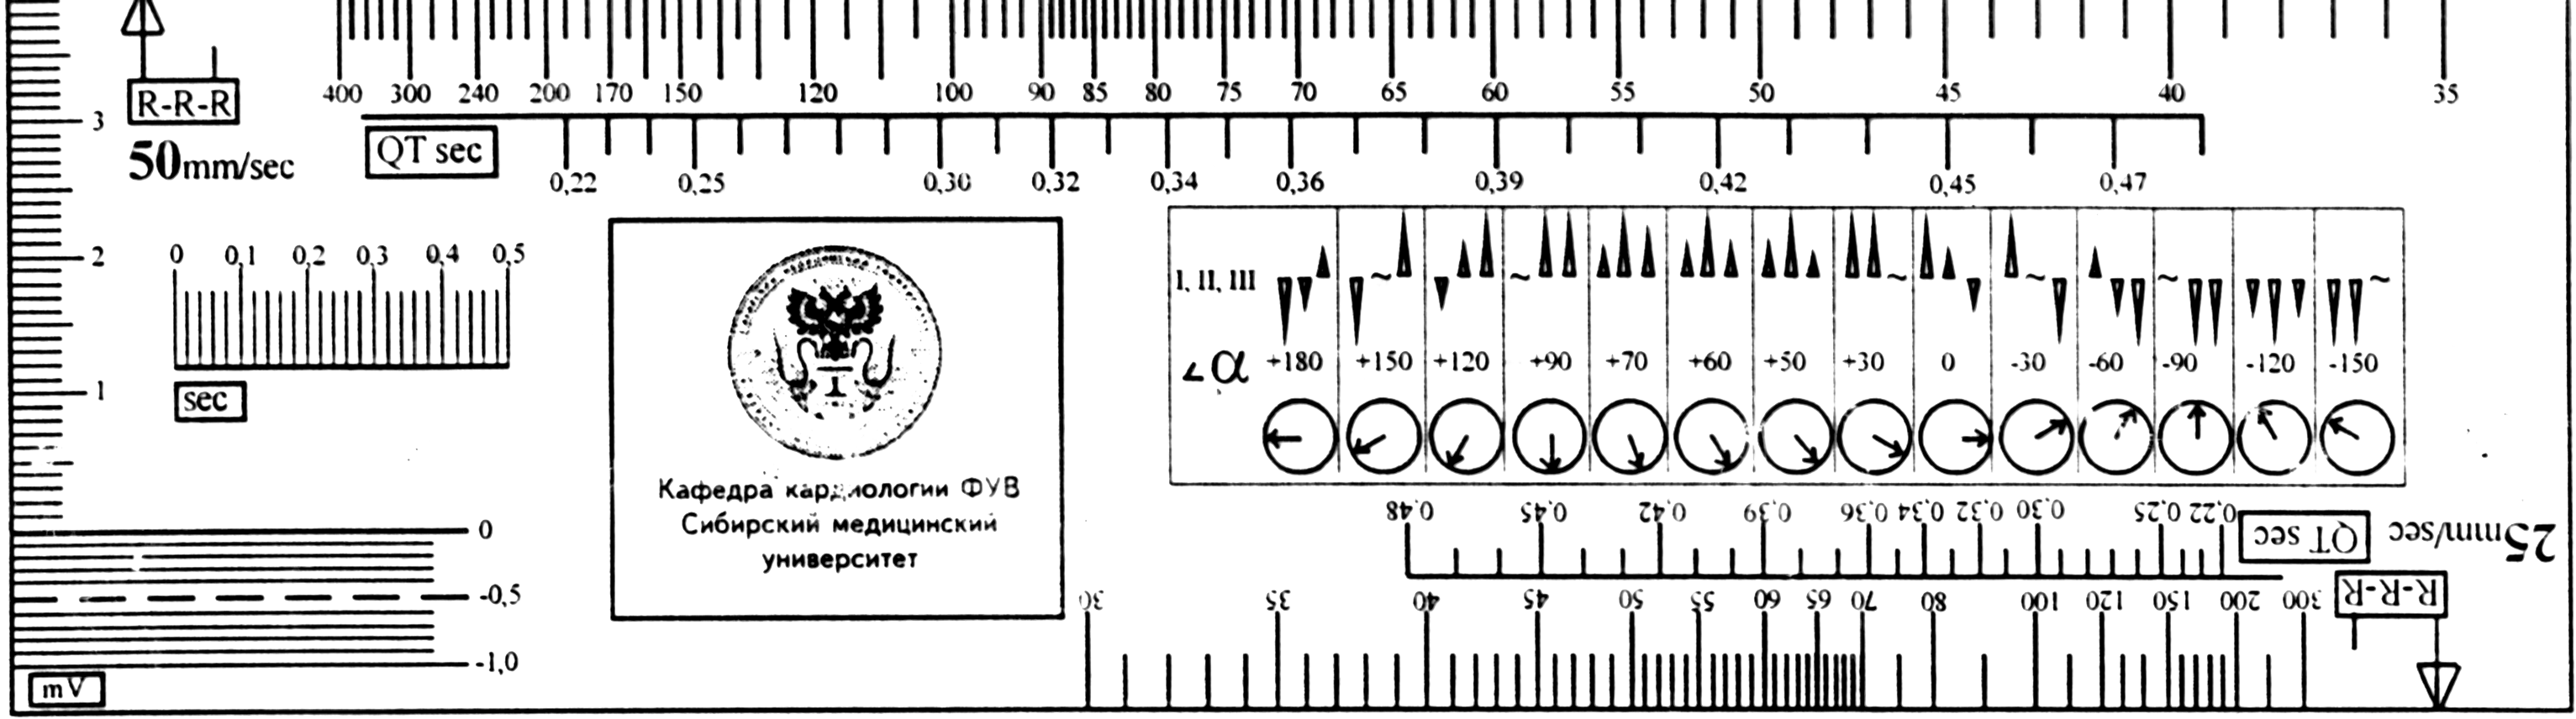 Transparent ruler png. File ecg wikimedia commons